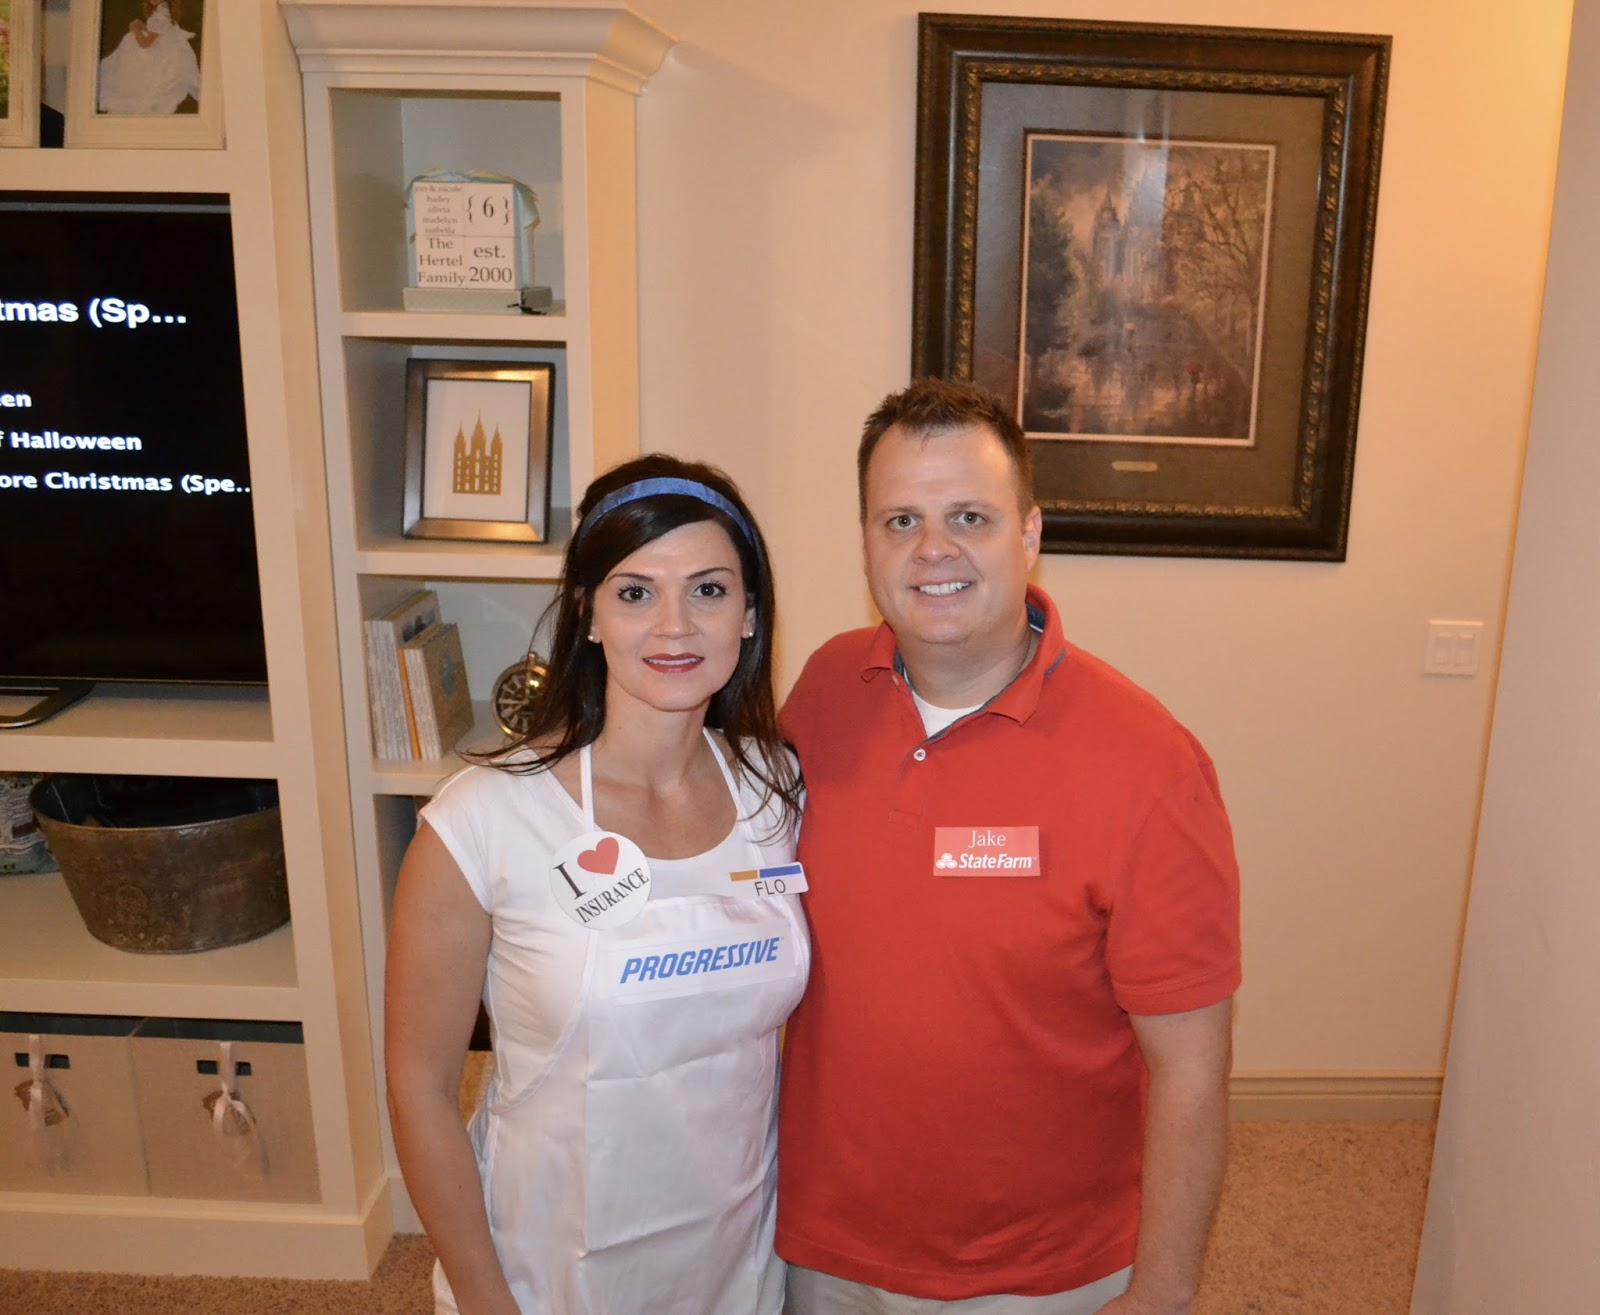 Flo and jake from state farm